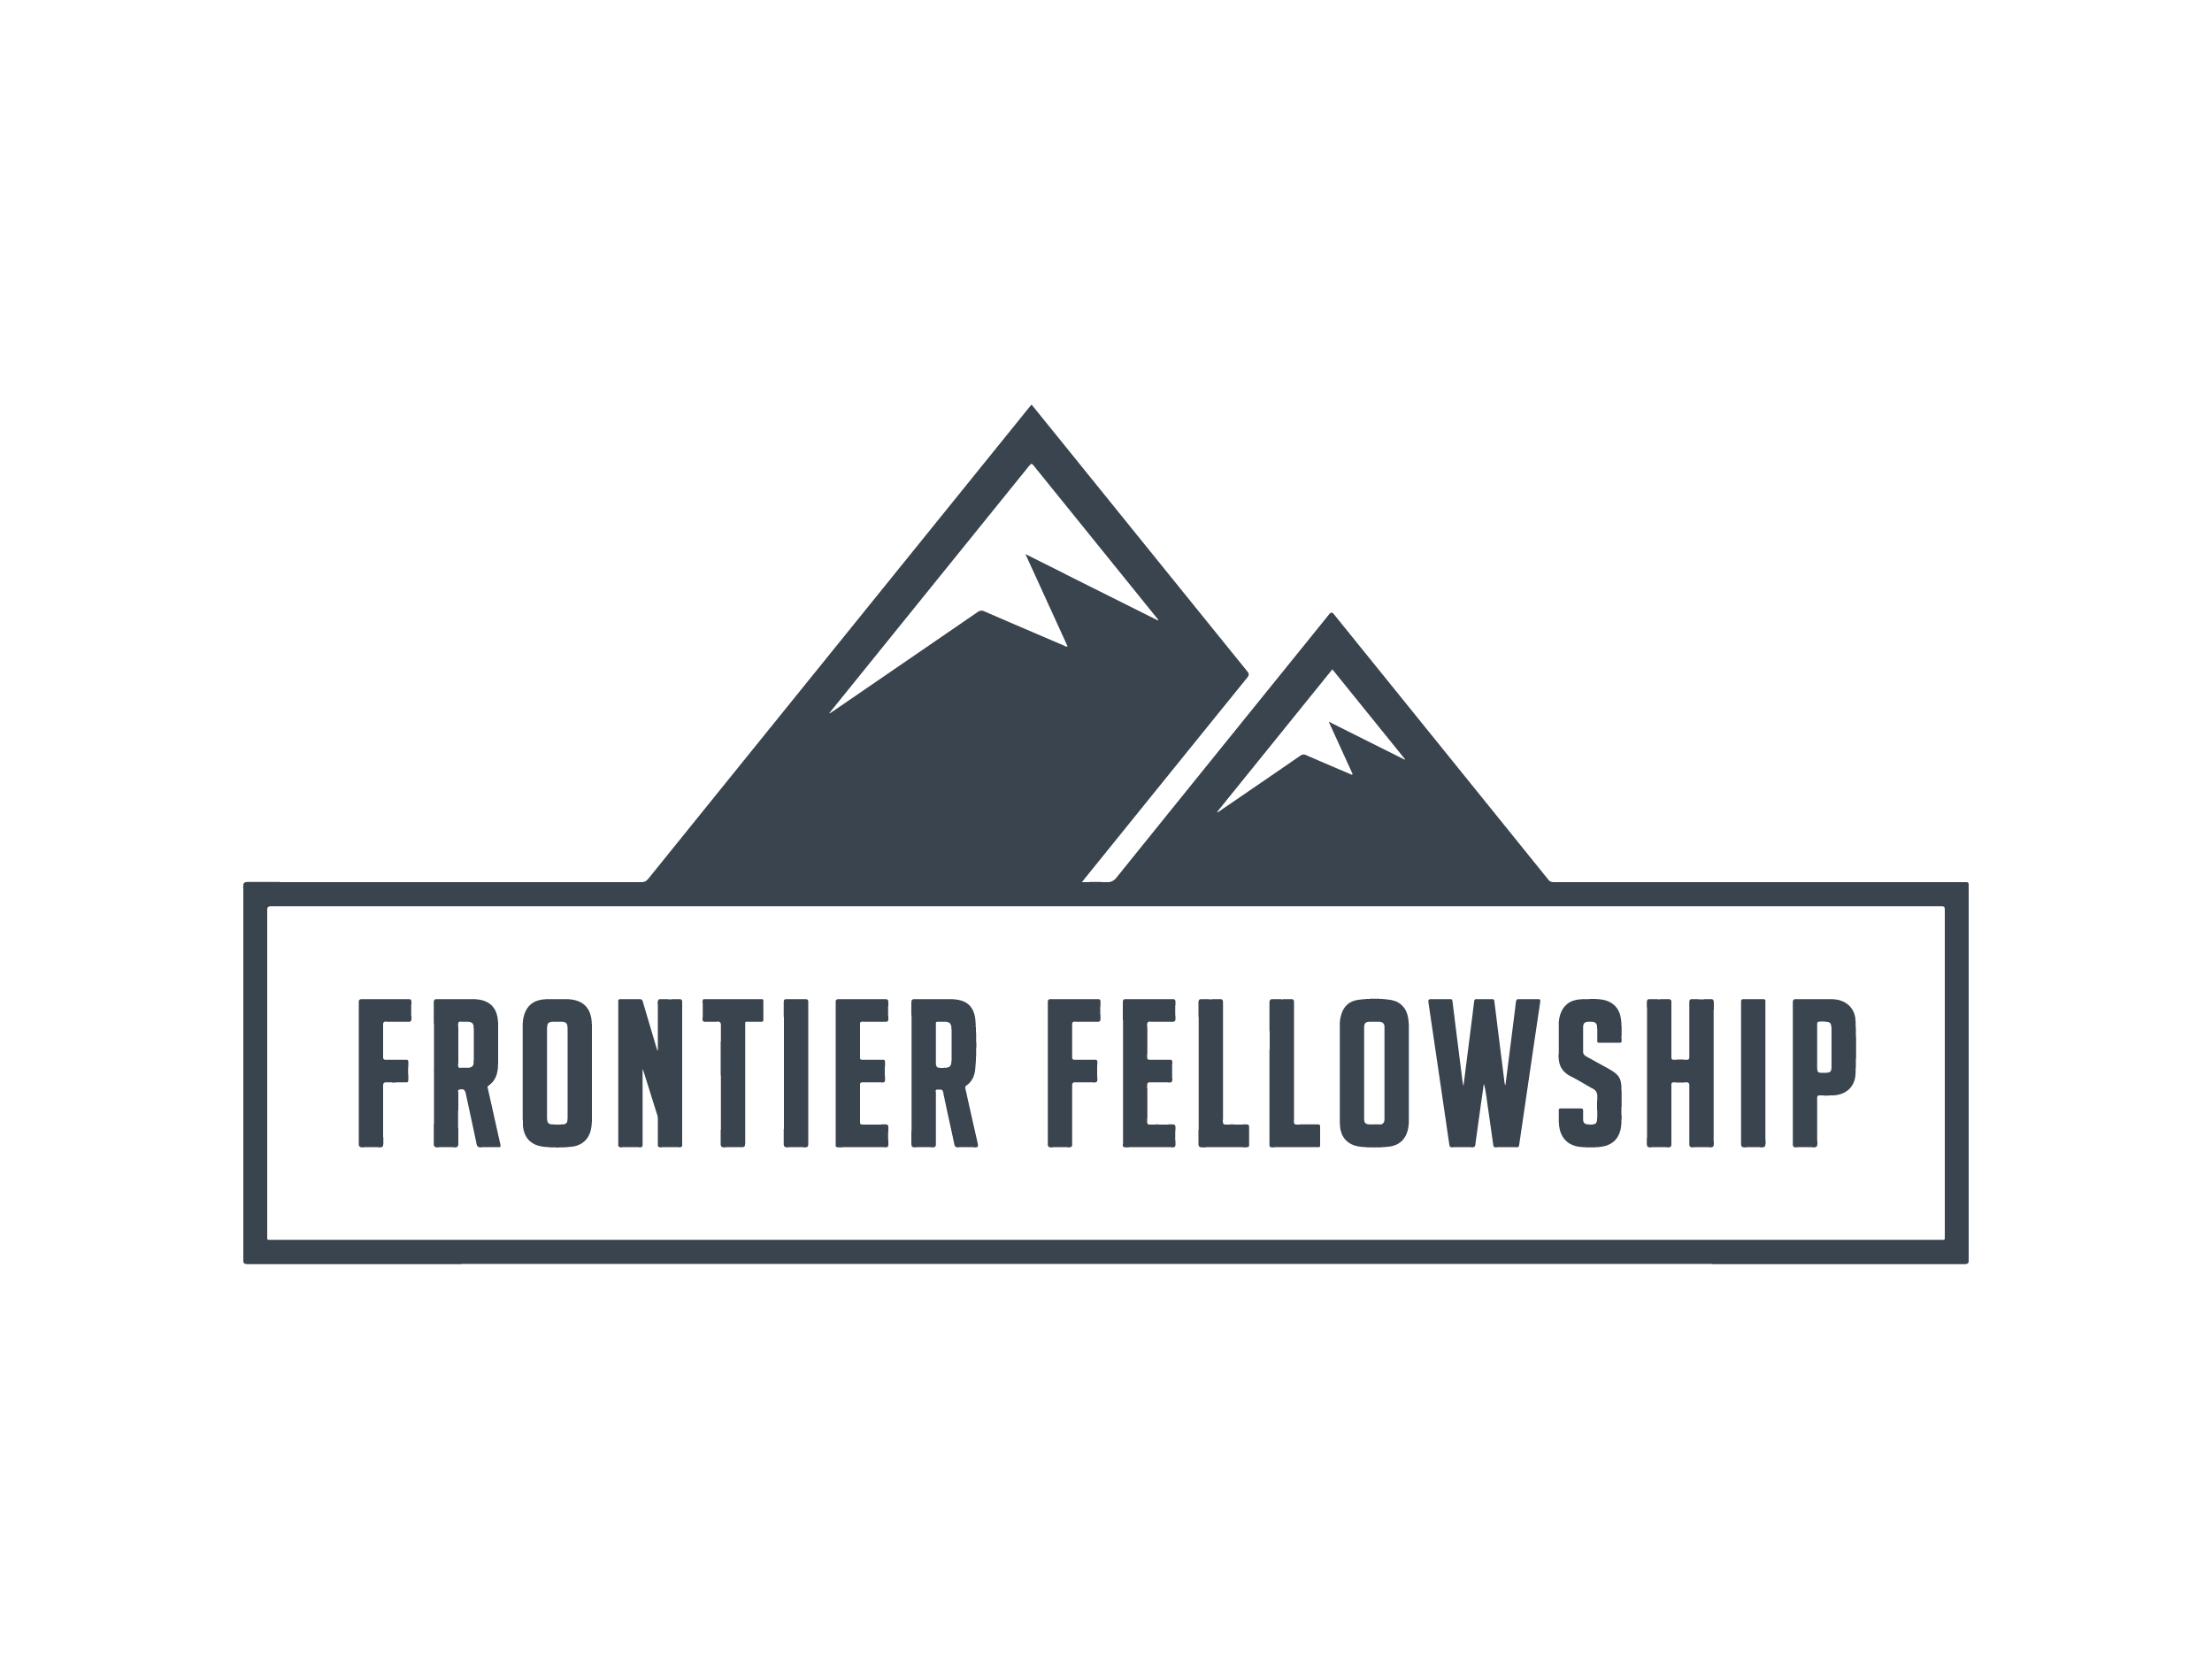 frontier-fellowship.png